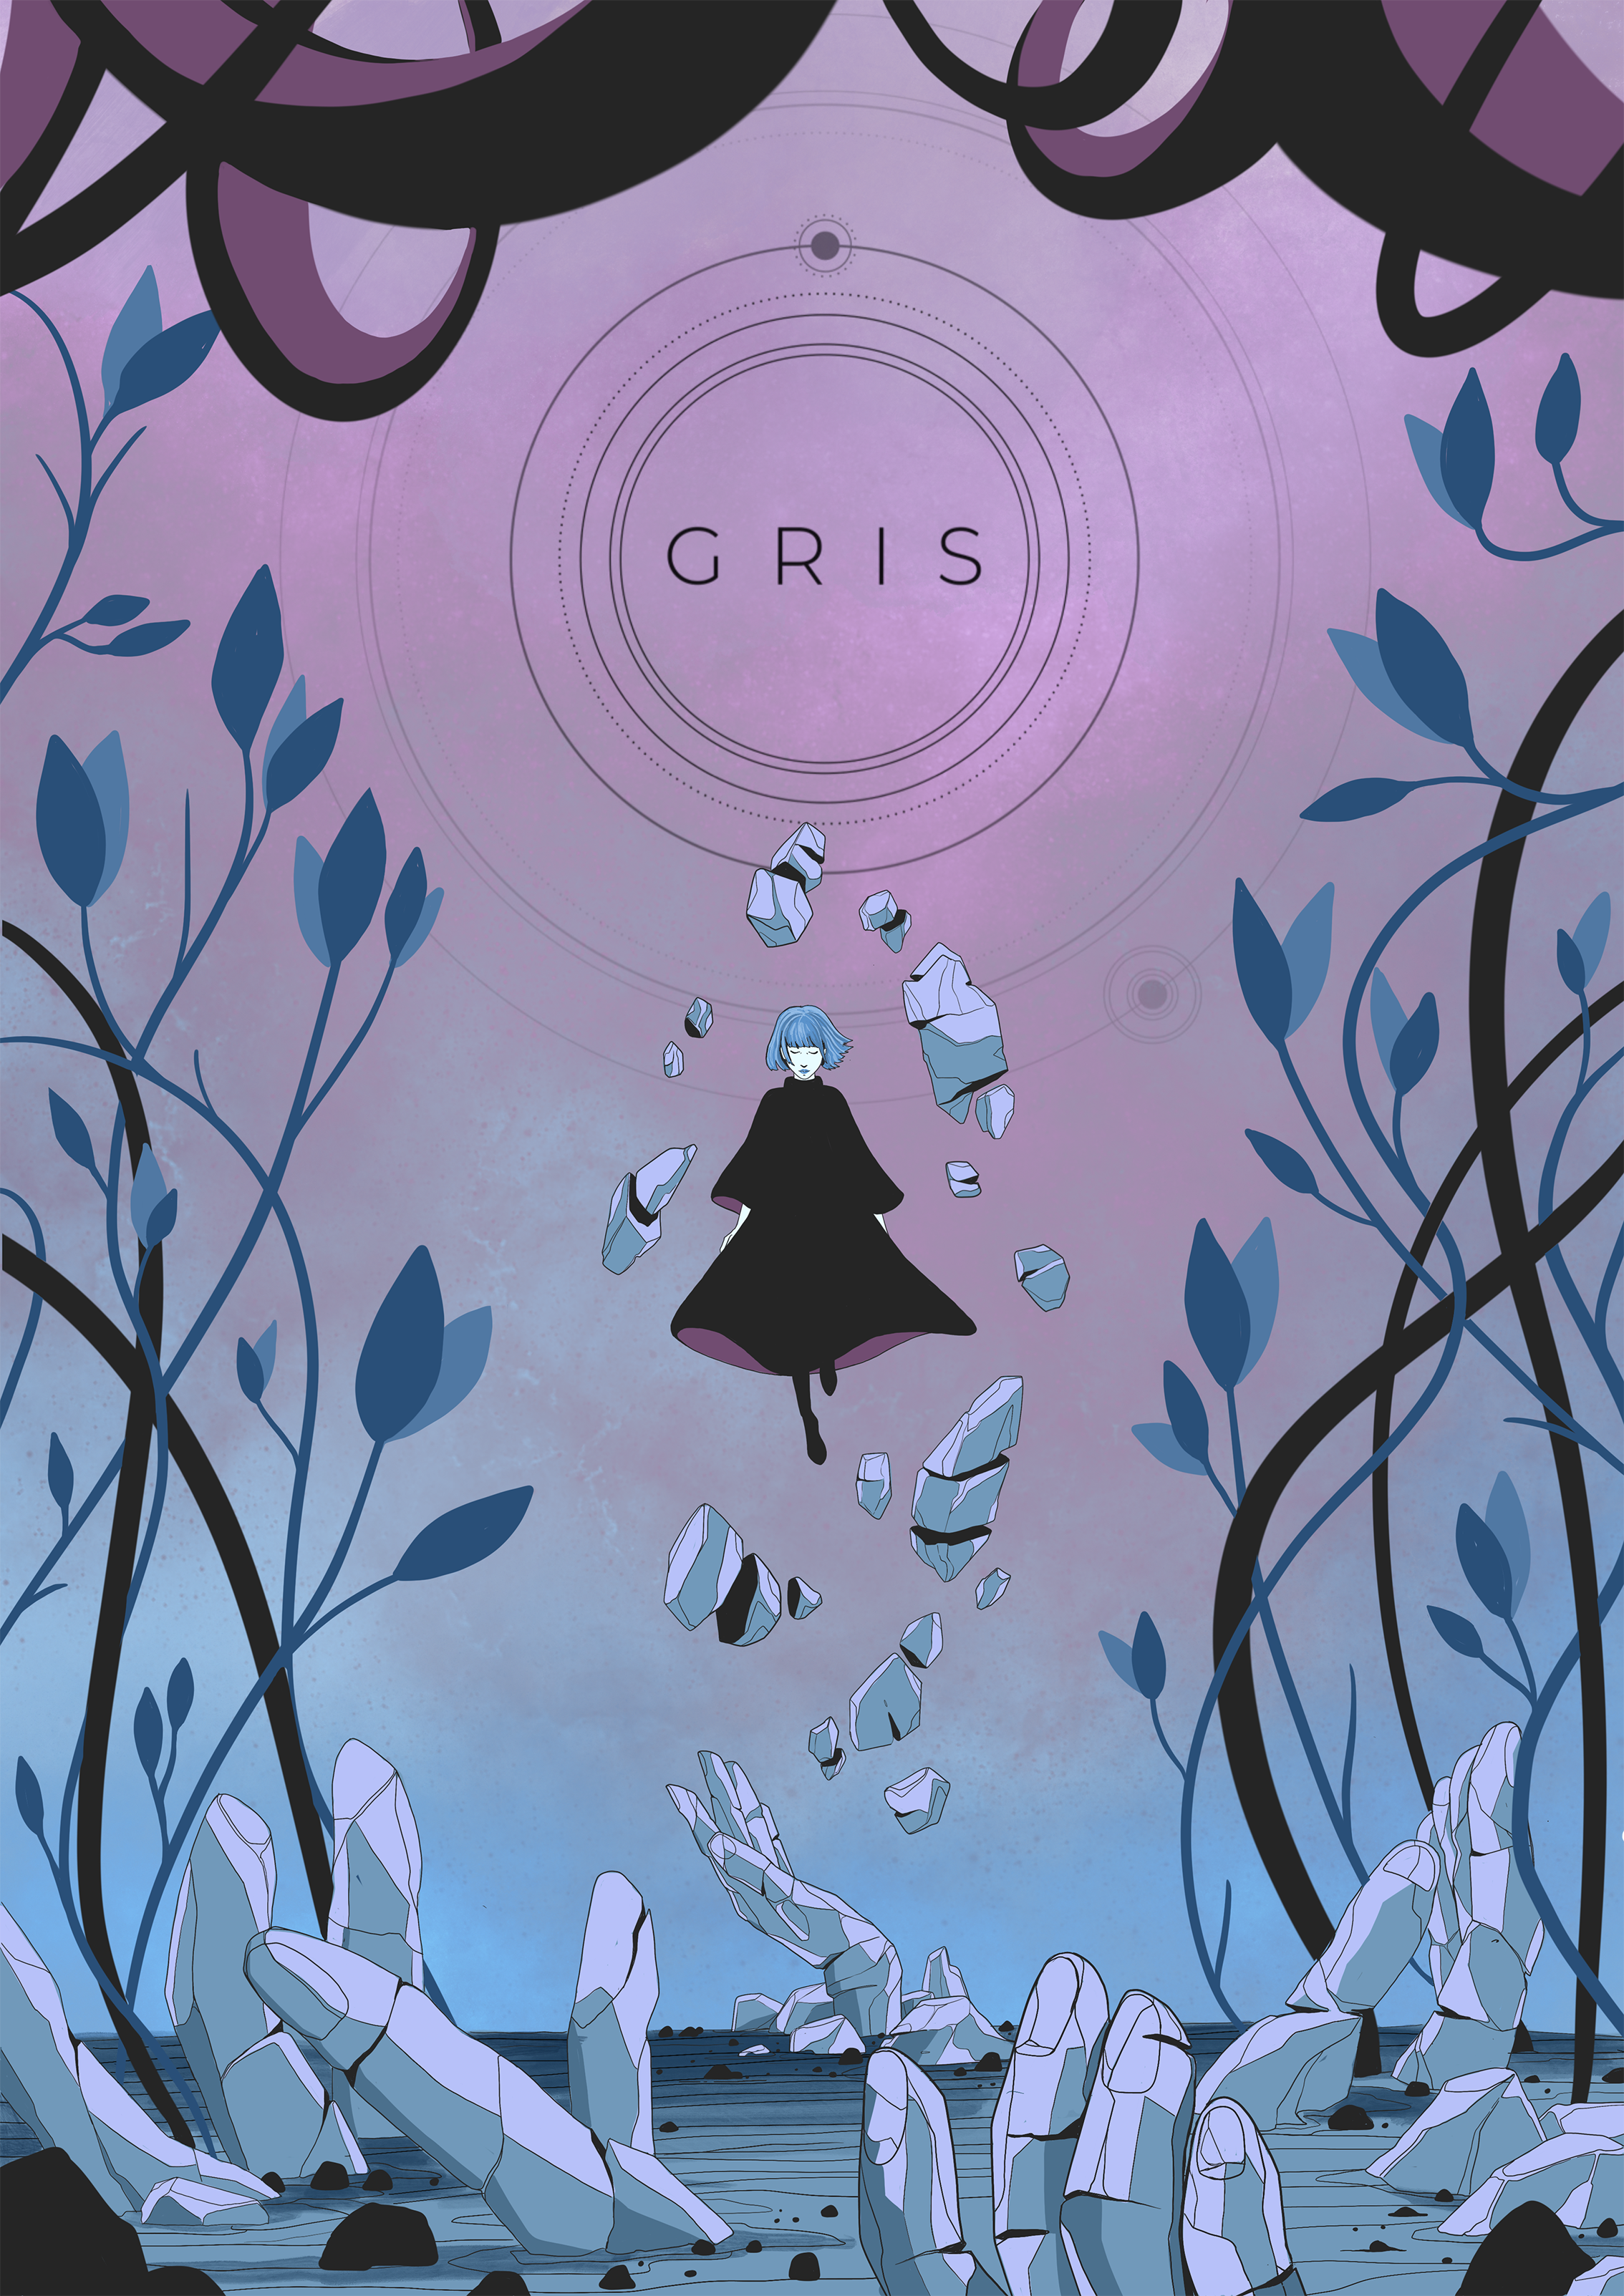 Poster Illustration for Gris Game